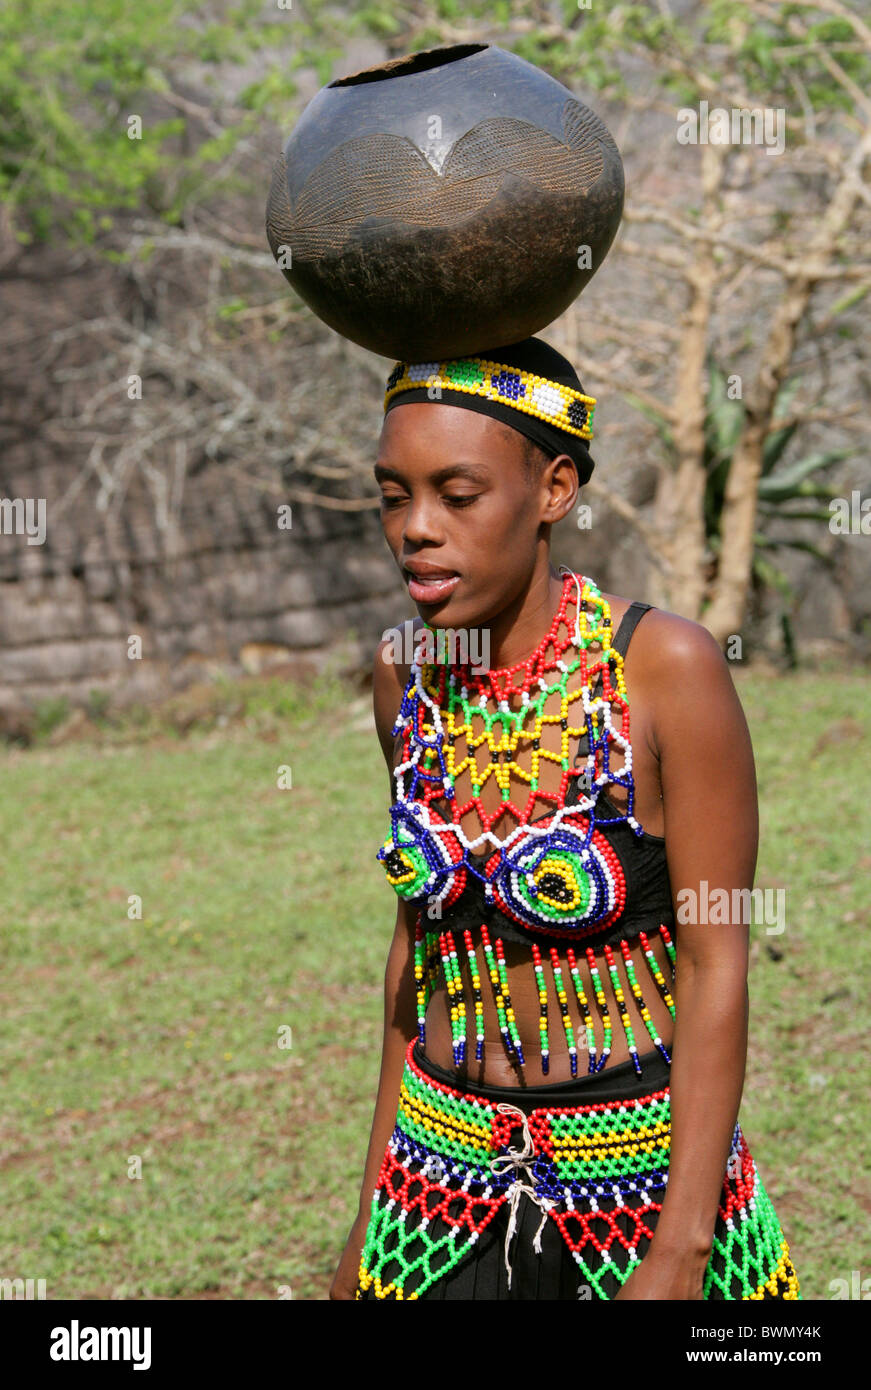 Traditional Beaded dressed of a Zulu young adult African